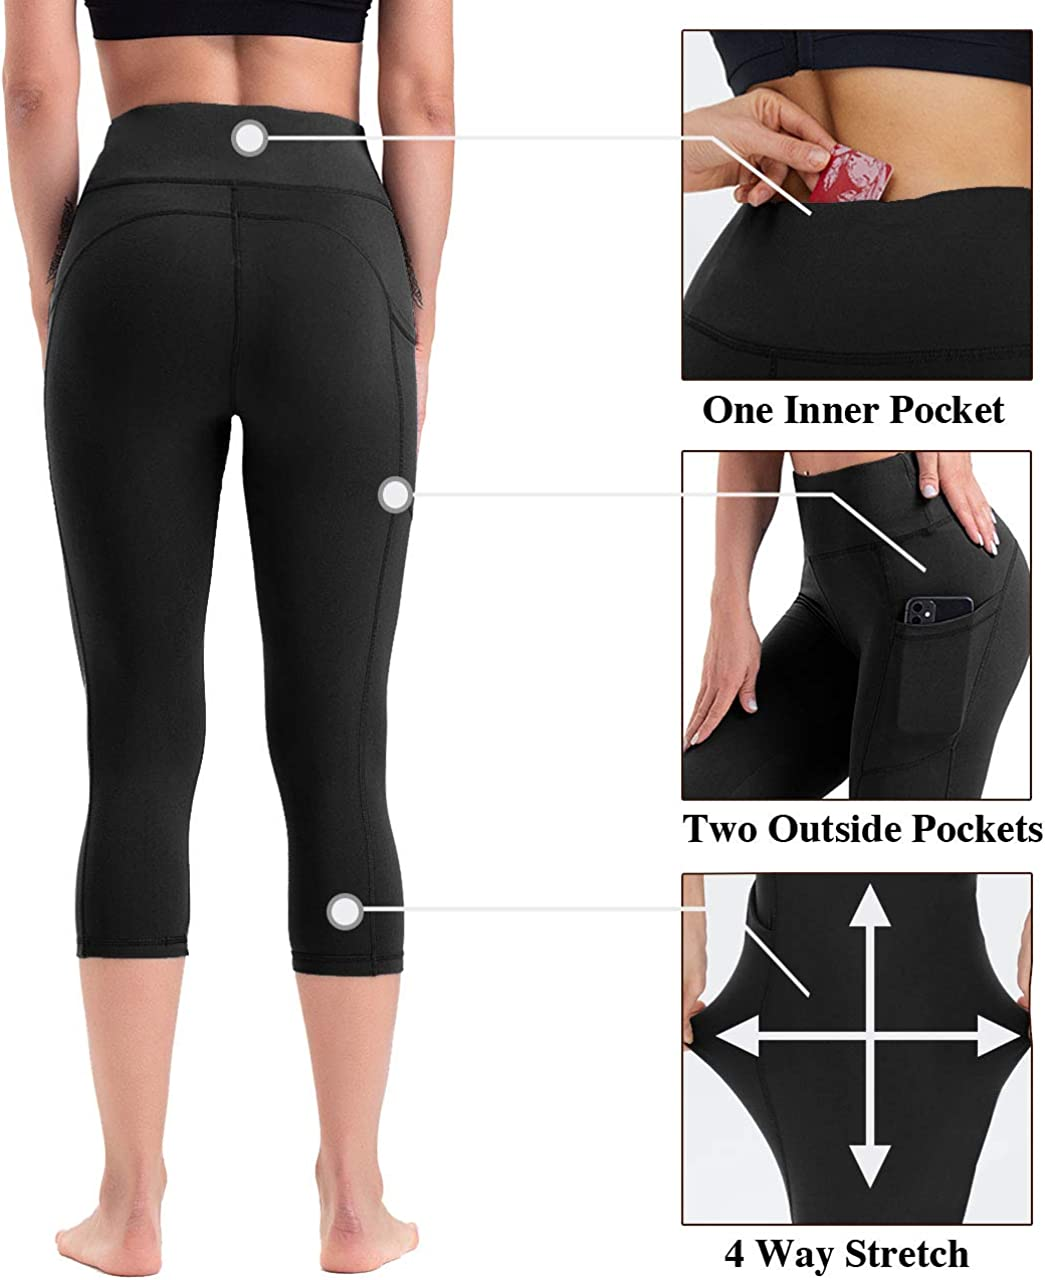 HLTPRO High Waist Yoga Pants for Women with Pockets Fitness Workout Athletic Soft Tummy Control Leggings for Running